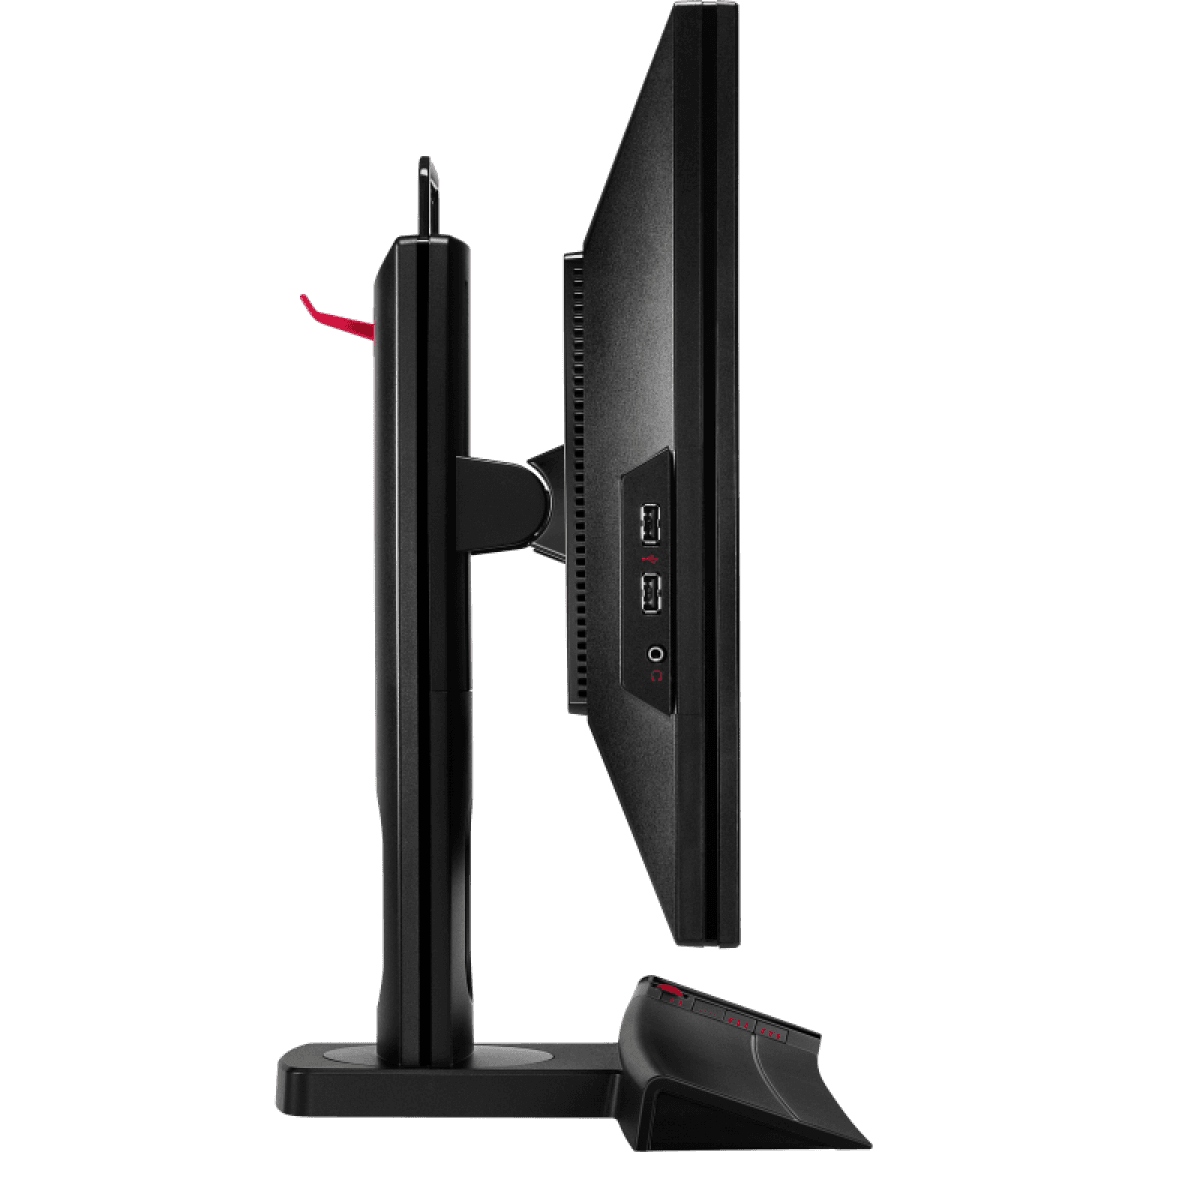 Monitor Gamer Benq 27 Pol, Full HD, 144Hz, 1ms, XL2720Z